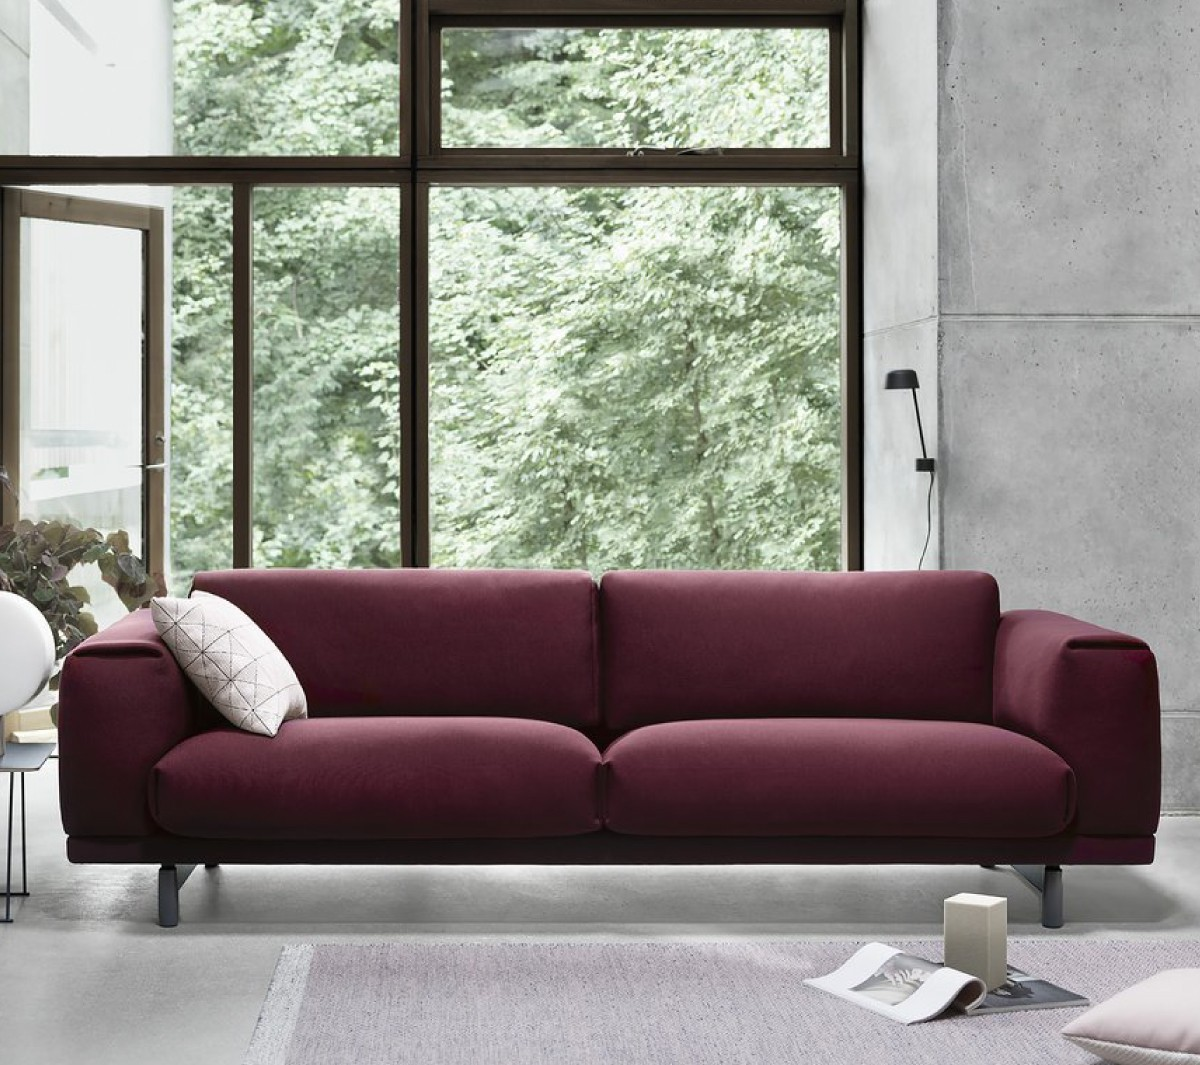 Muuto Oslo Sofa Rest Sofa By Muuto Luxury Interior Design Online Shop